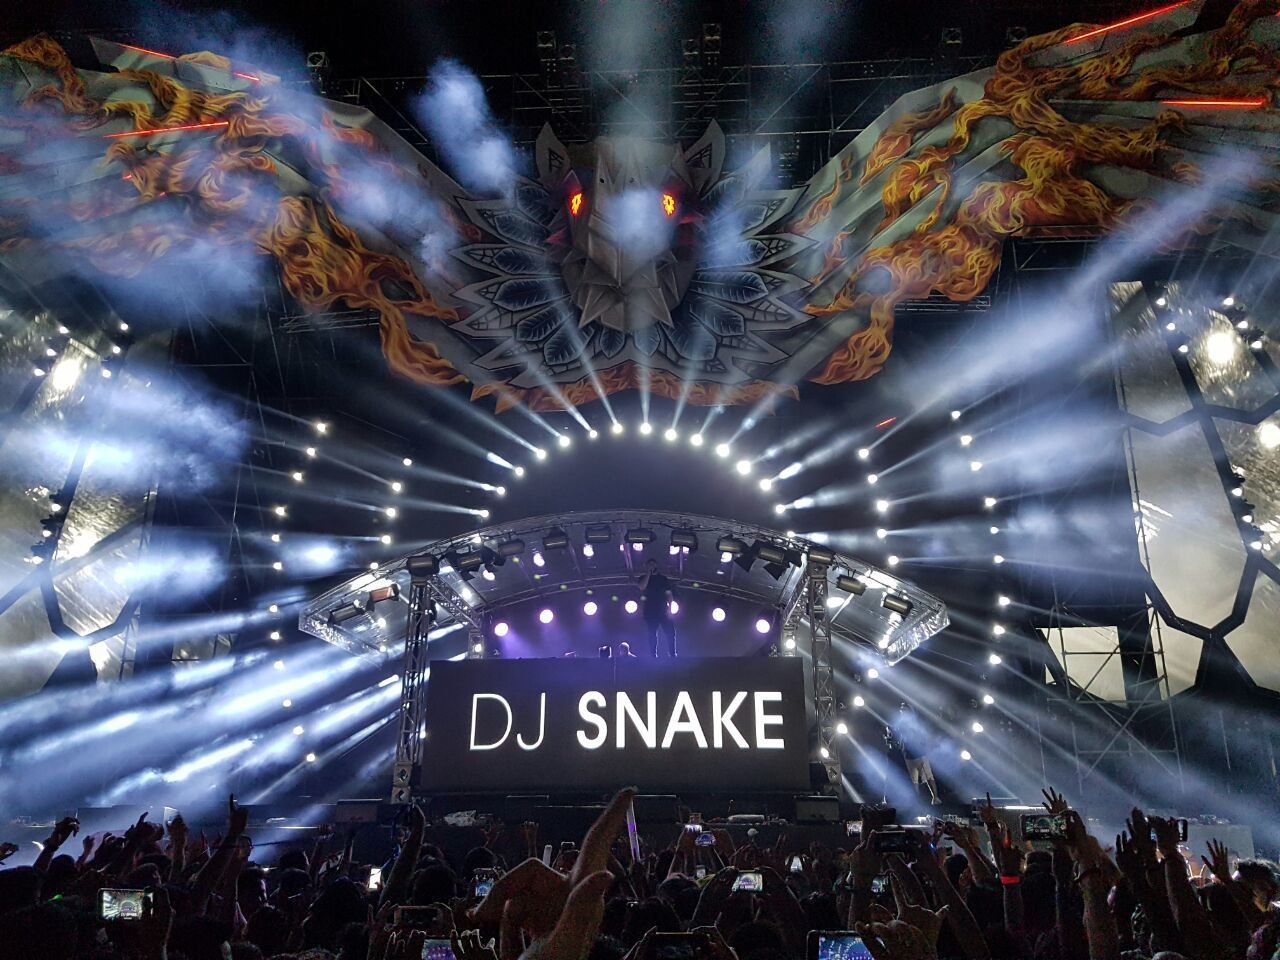 TakeoverMusic Musicfestival Raver Raveparty Djsnake DWP16 Djakarta Warehouse Project 2016